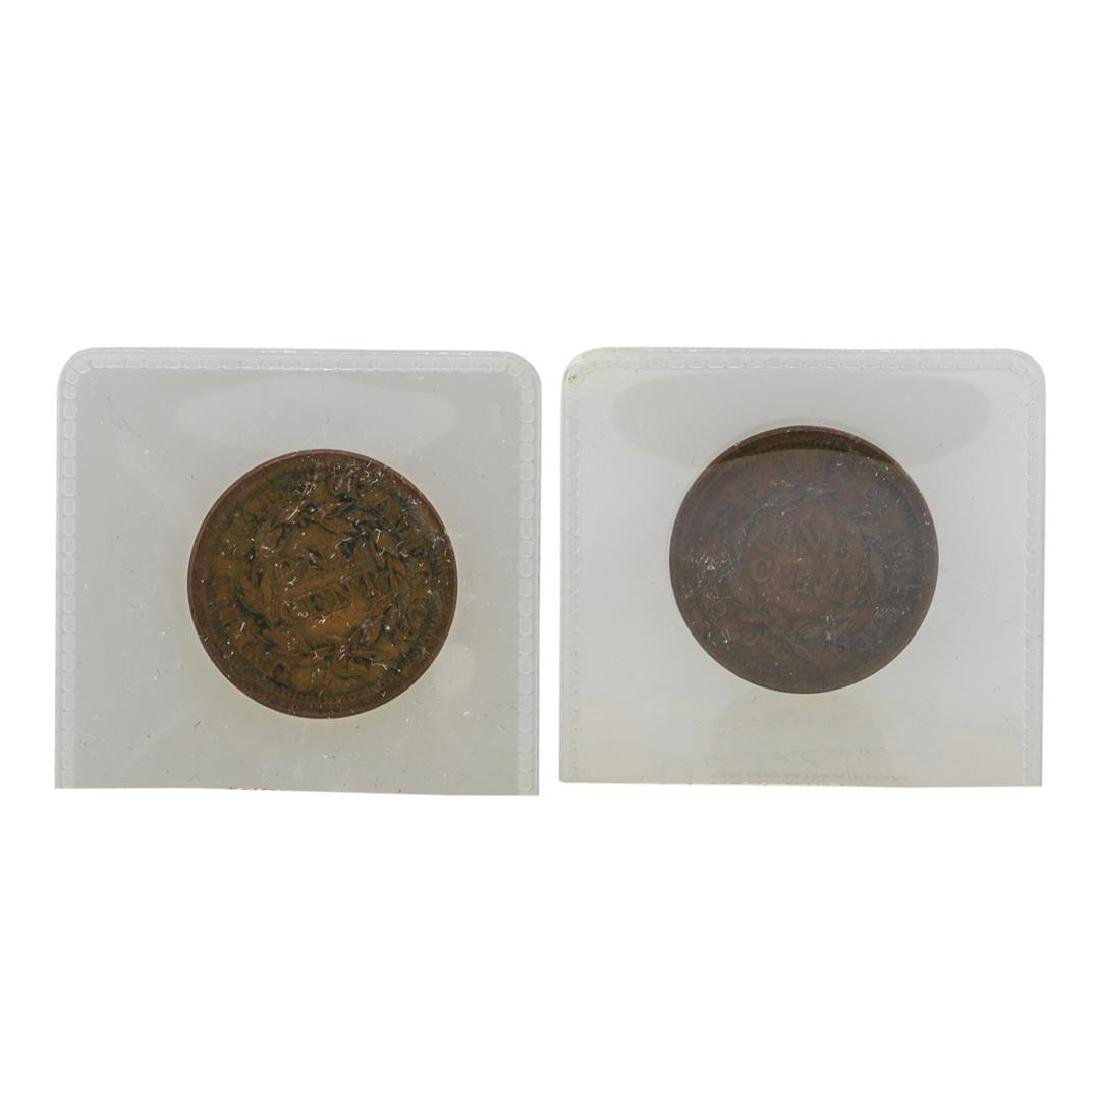 Lot of 1853 & 1854 Large One Cent Coins in Old Flip - 2